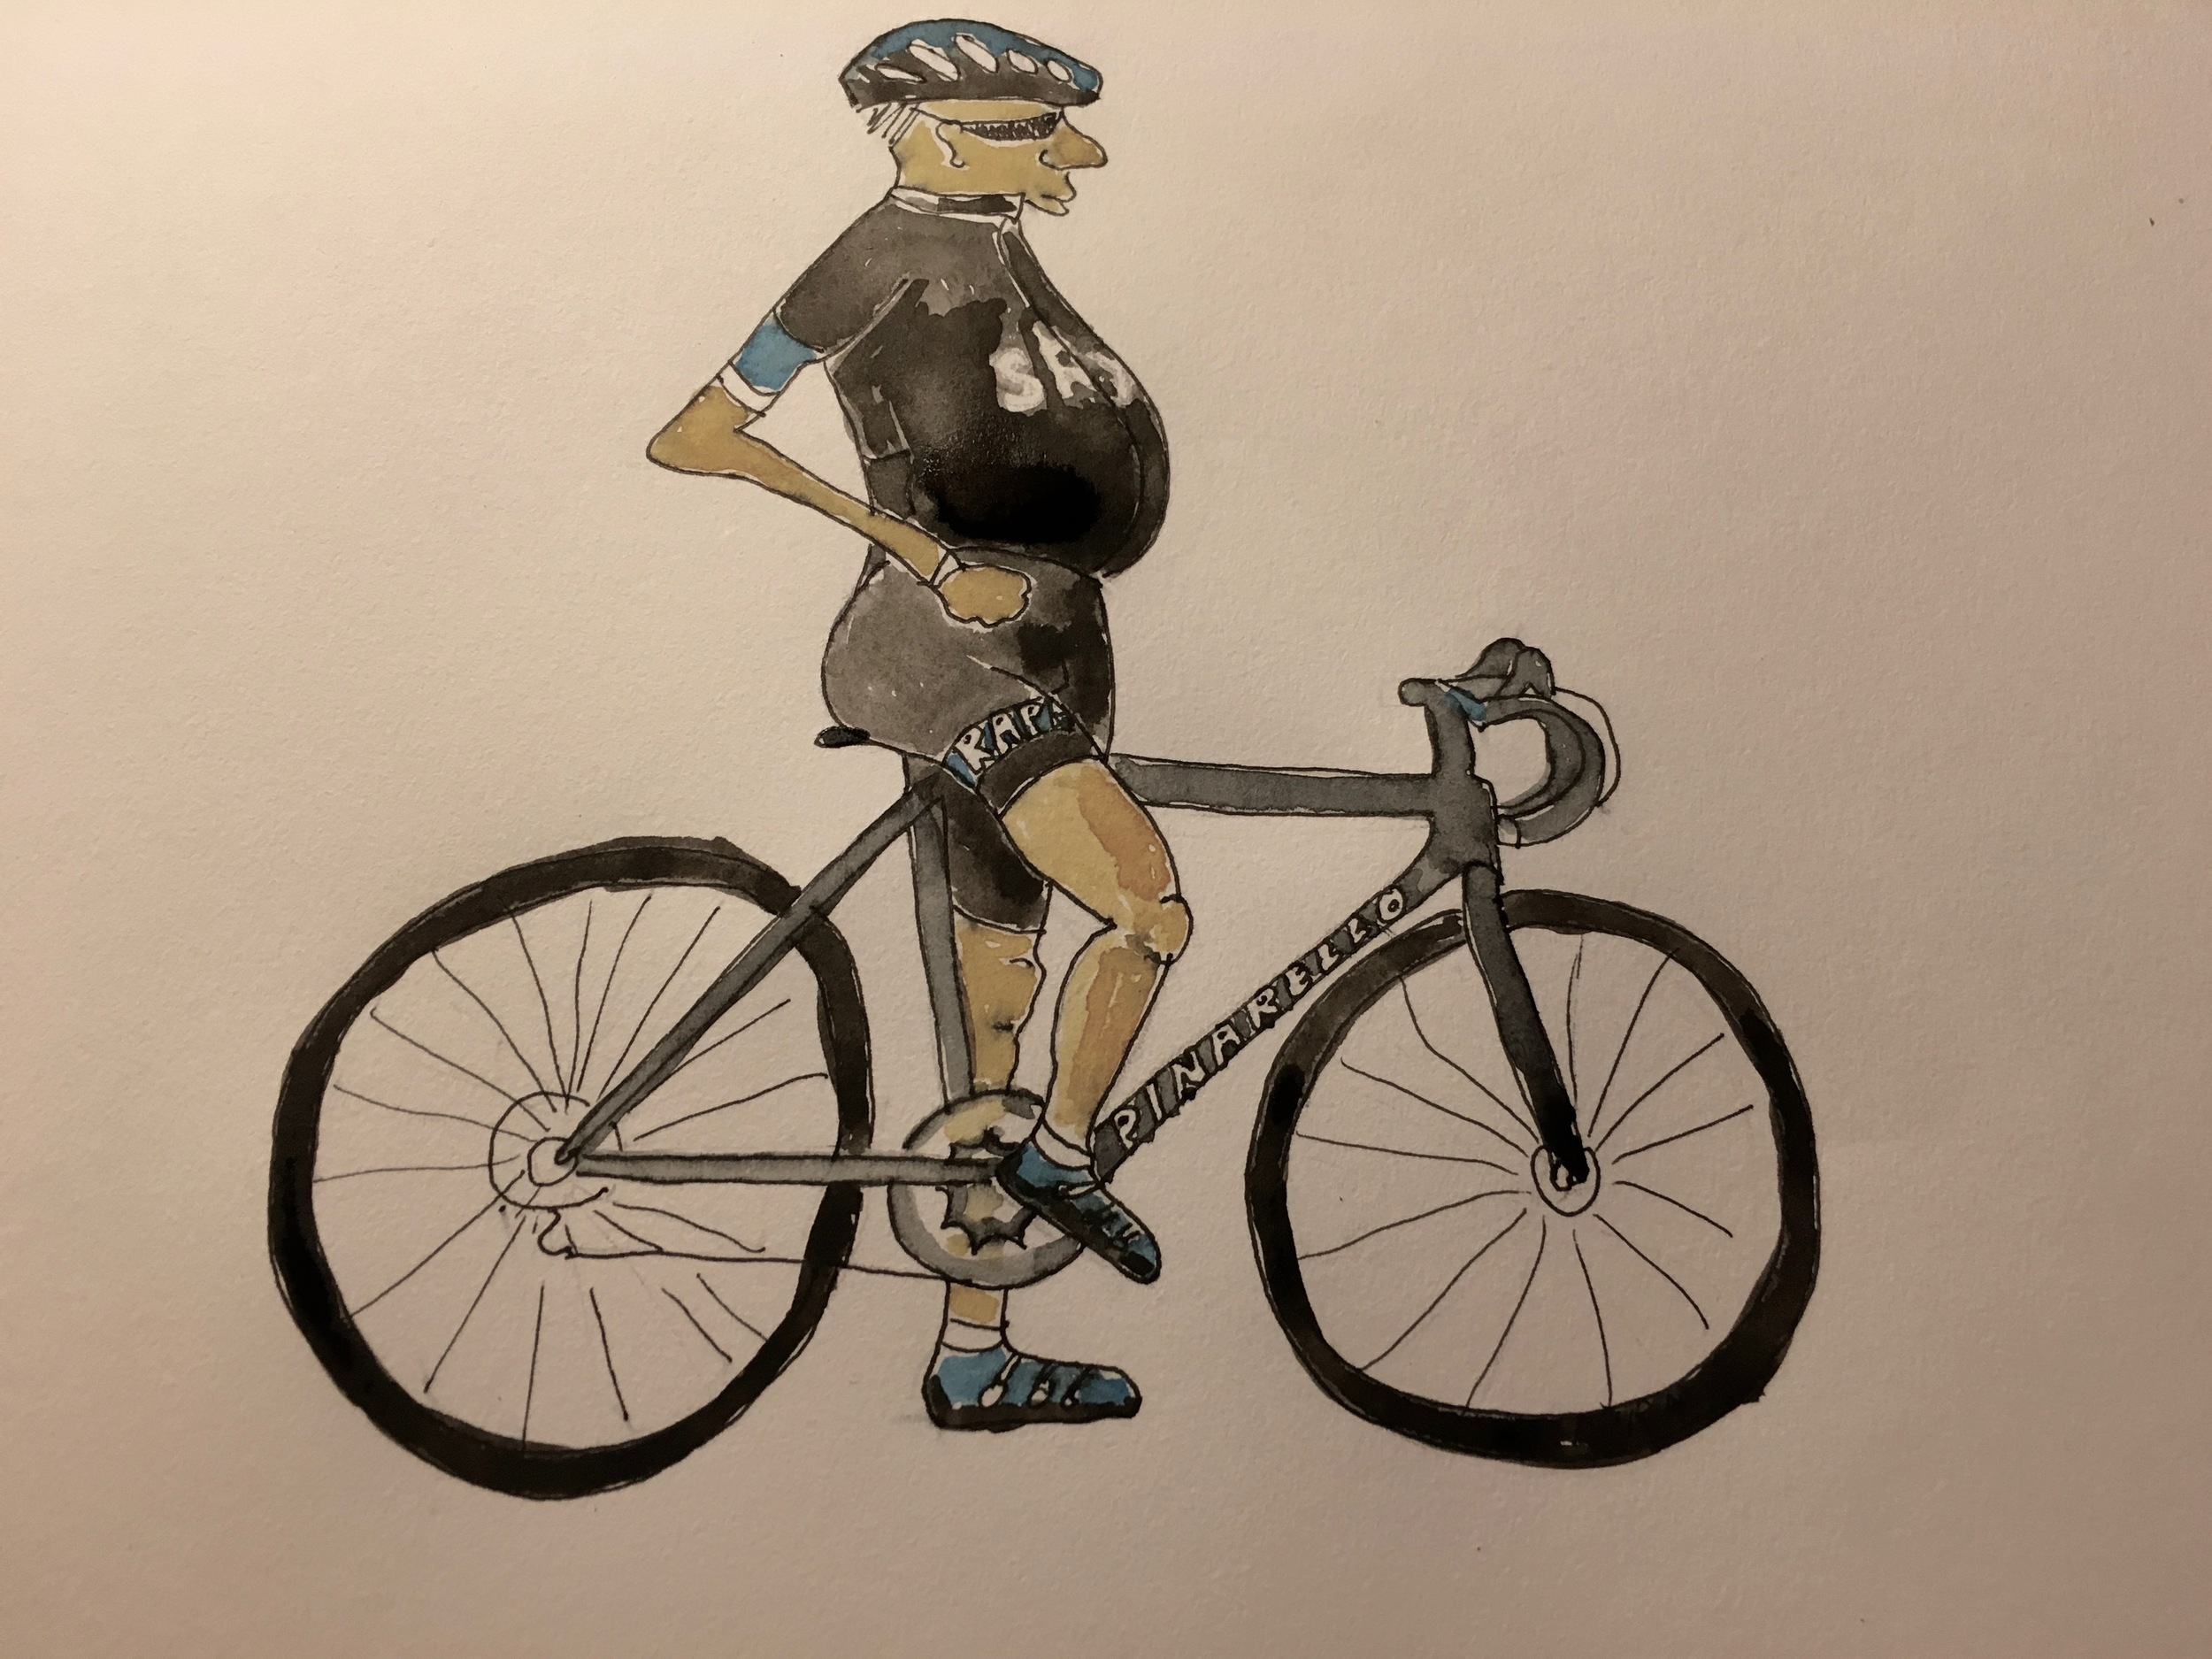 Rapha Man stops for a breather on his Pinarello Dogma